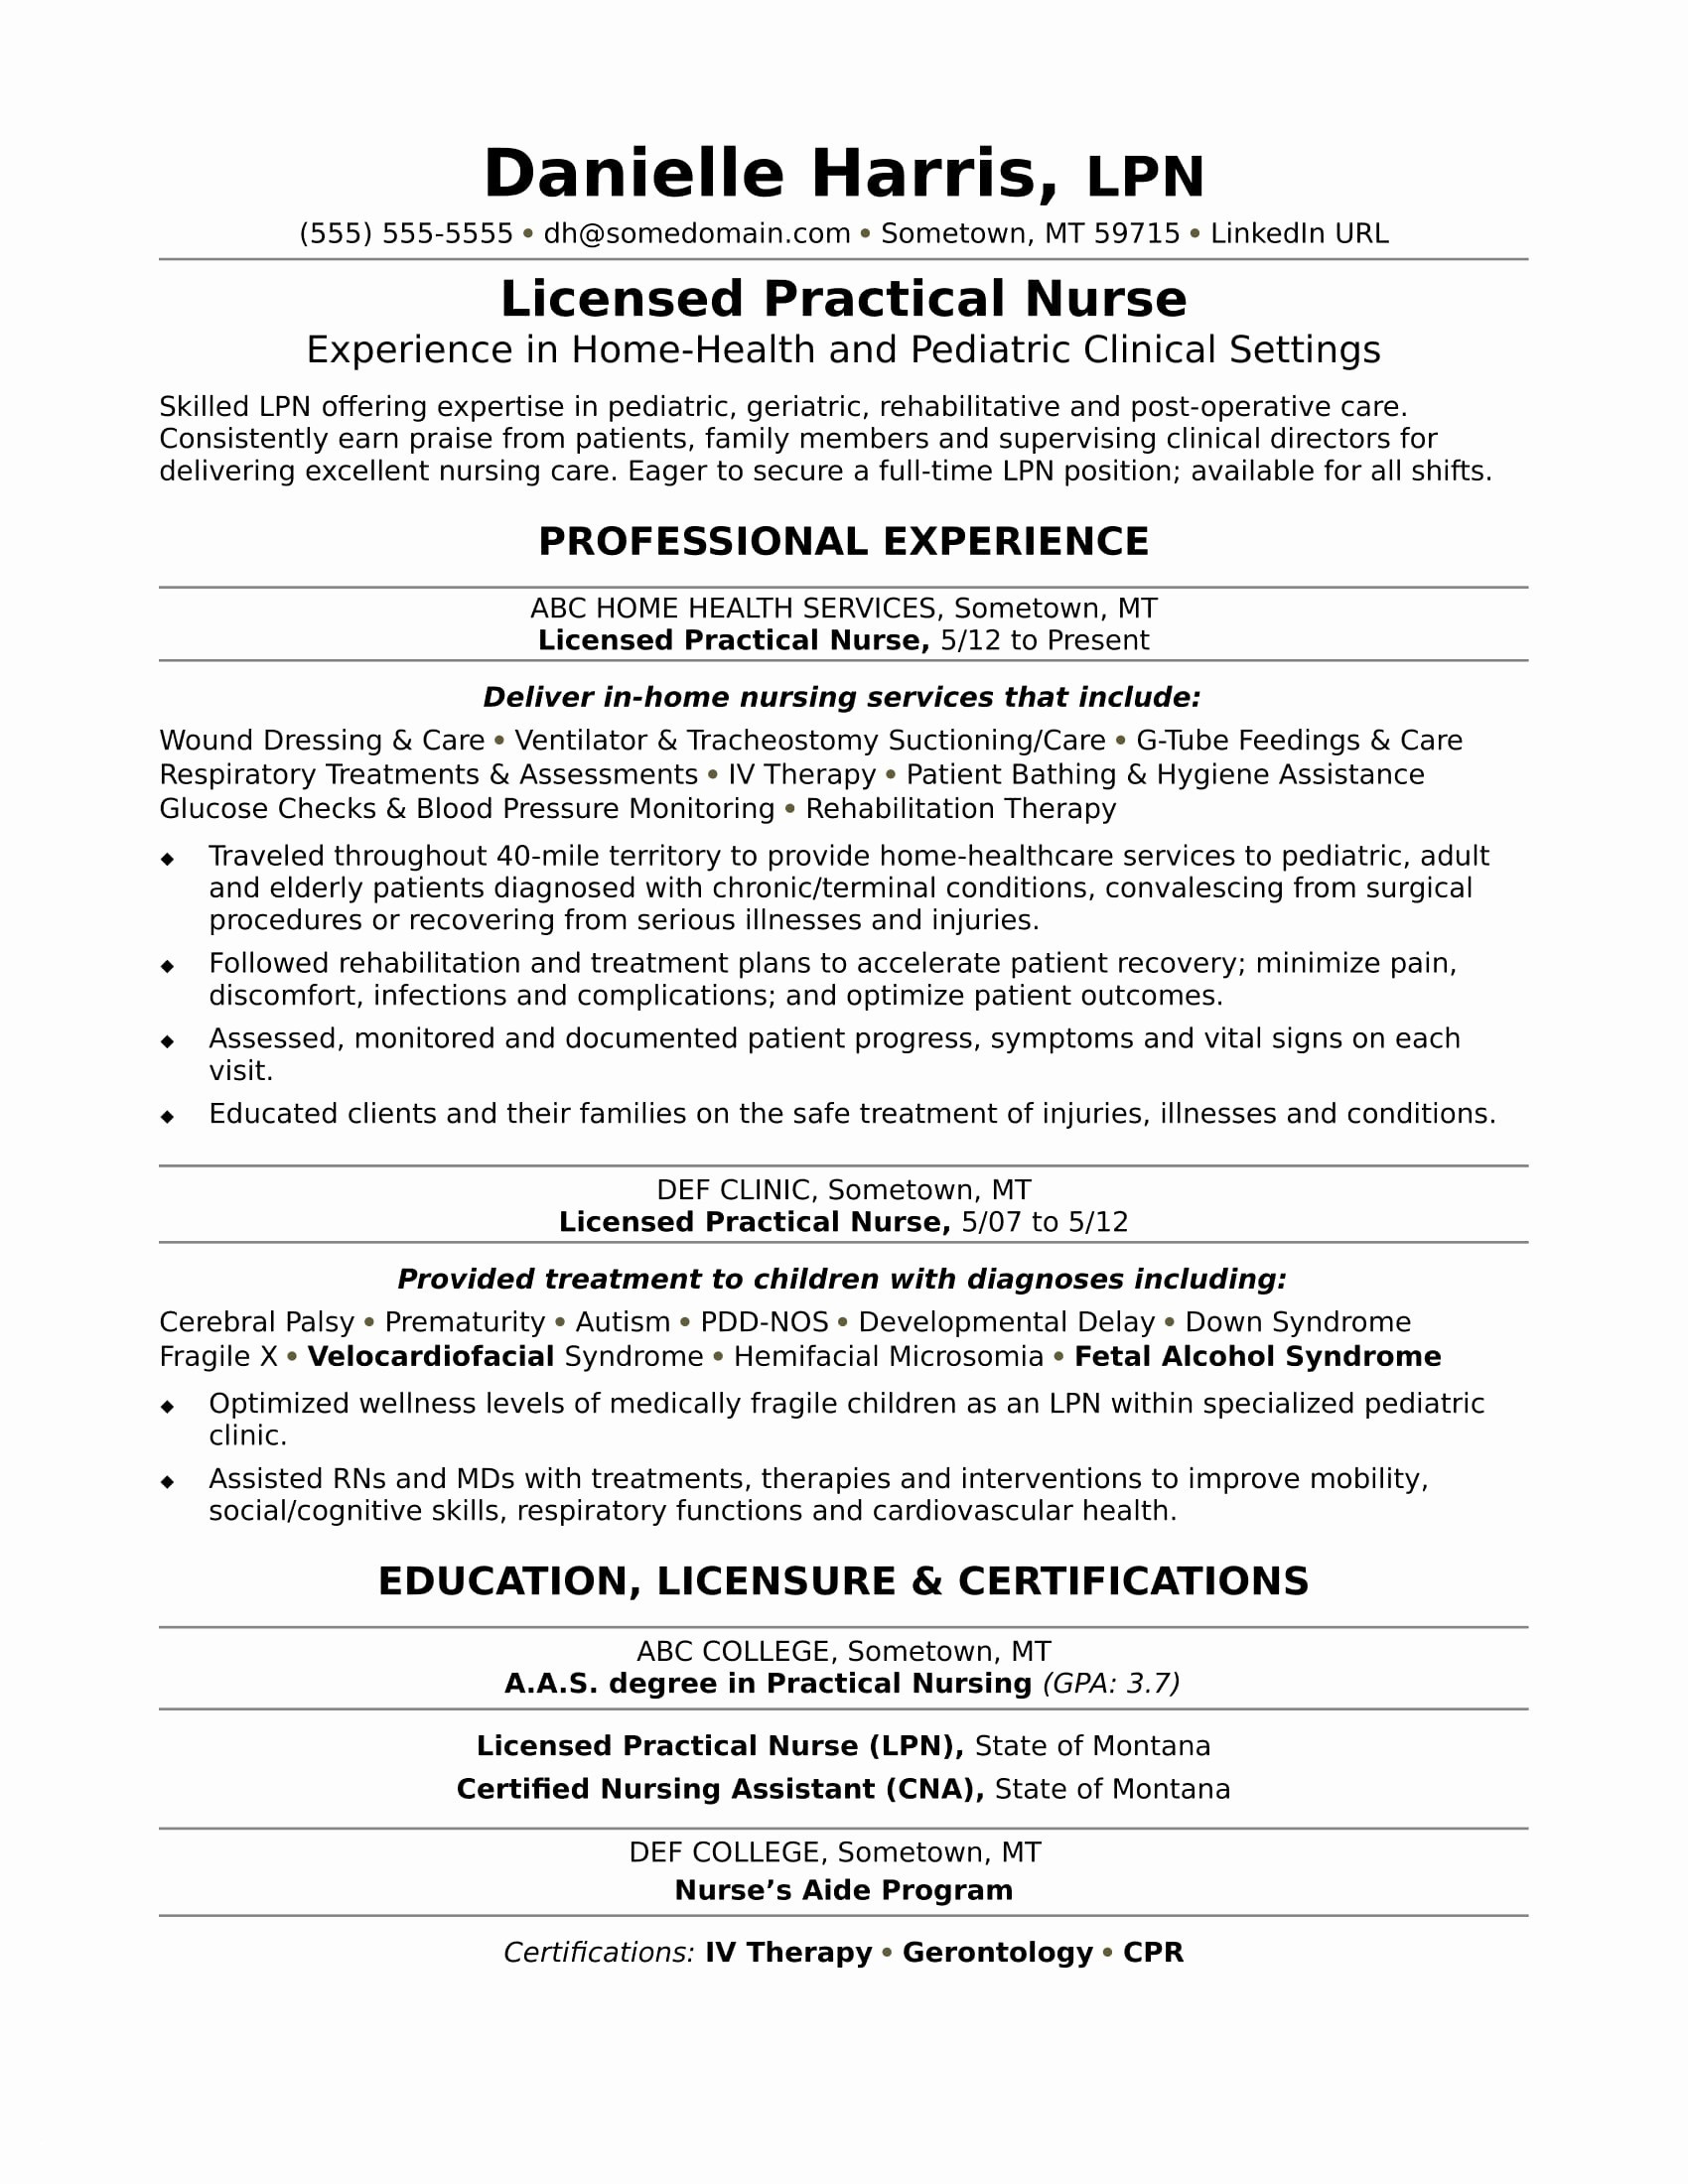 Resume and Linkedin Profile Writing - Resume and Linkedin Profile Writing Valid Linkedin Resume Upload